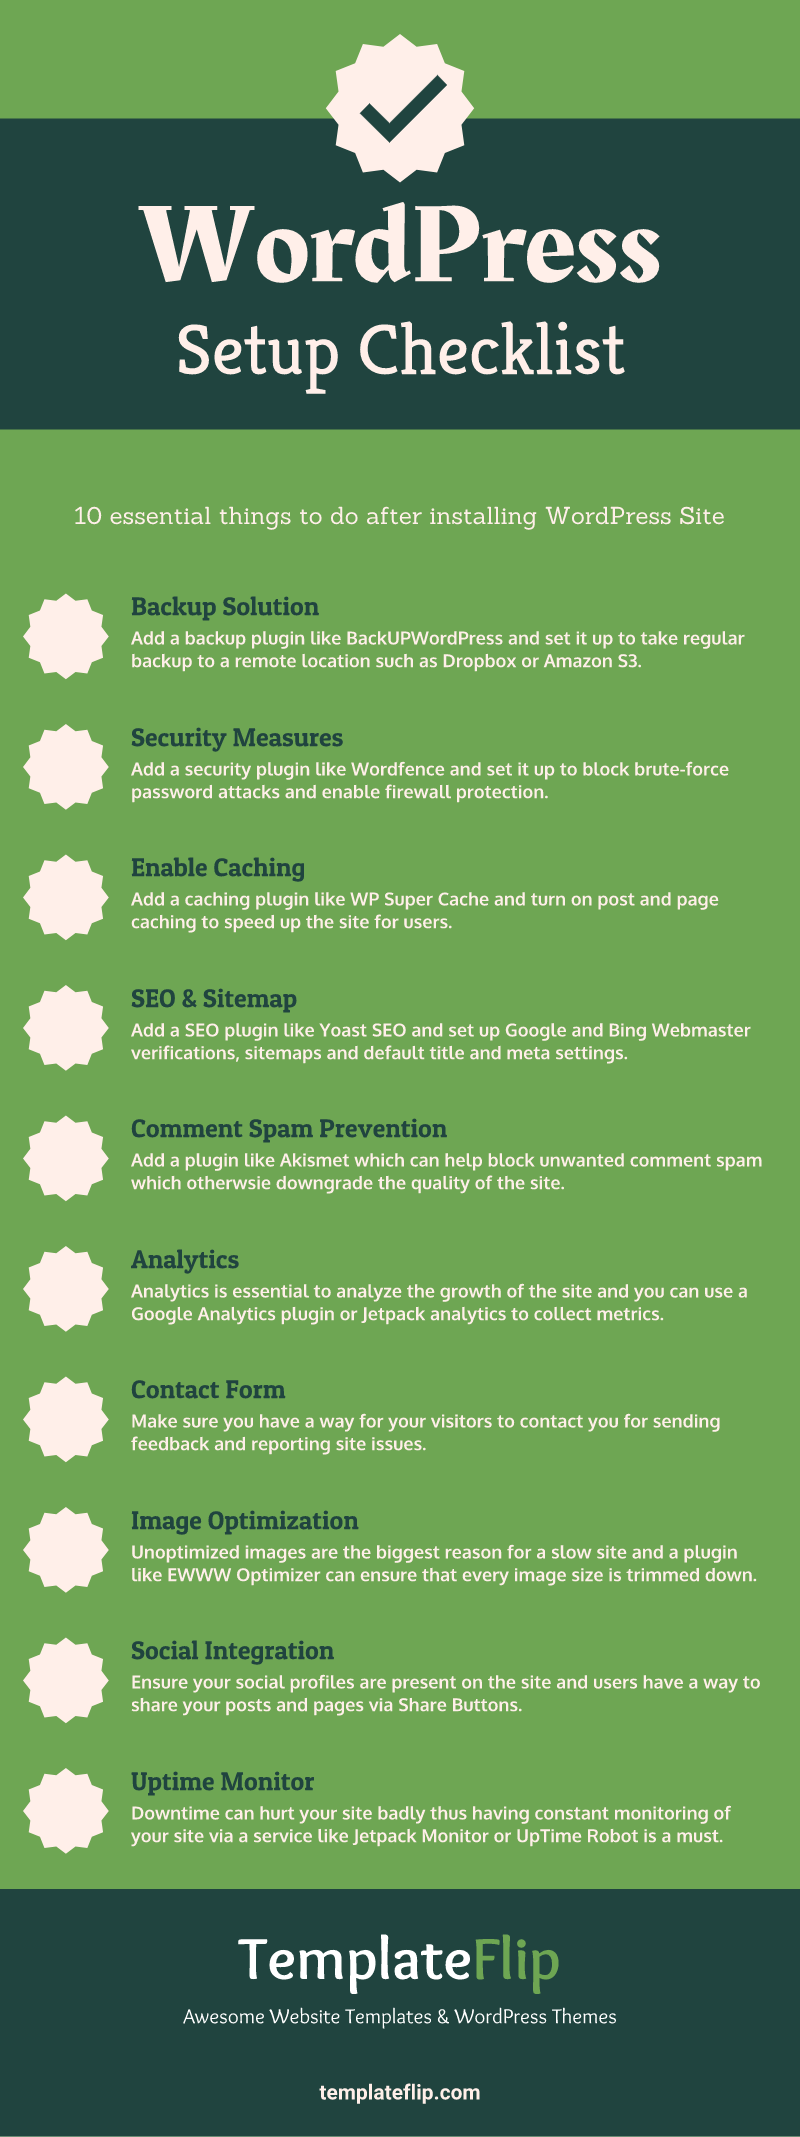 WordPress Setup Checklist Infographic